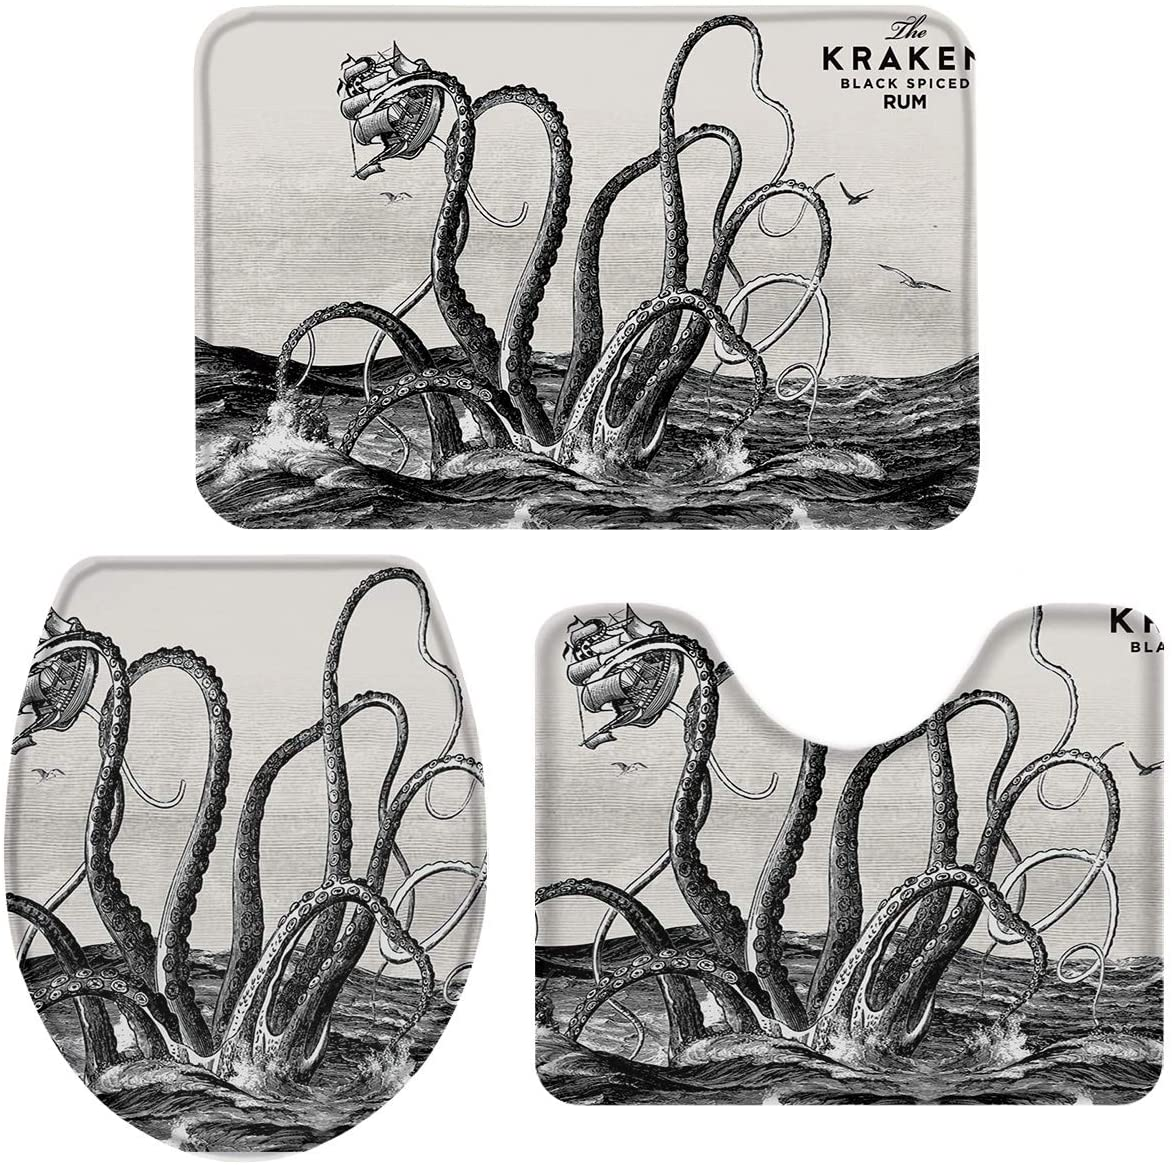 T&H Home Bath Rug Sets 3 Piece for Bathroom - The Kraken Black Spiced Rum Retro Octopus in Ocean Ultra Soft Non-Slip Absorbent Shower Mat, Contour Mat & Toilet Lid Cover 20